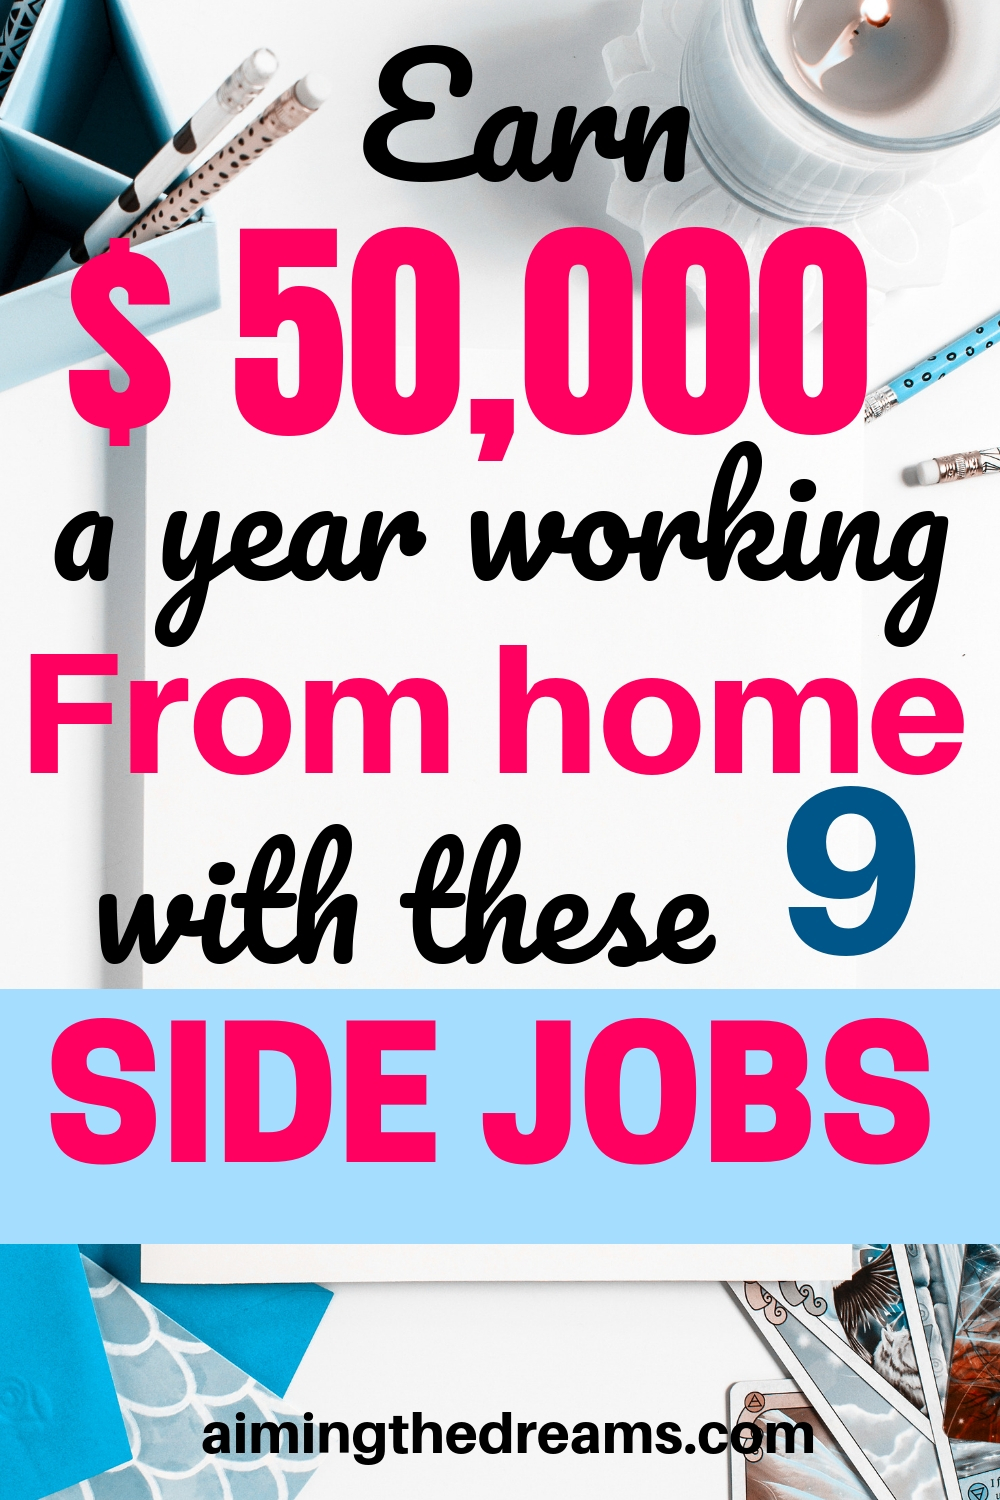 9 best side jobs to earn $50,000 a year working from home.